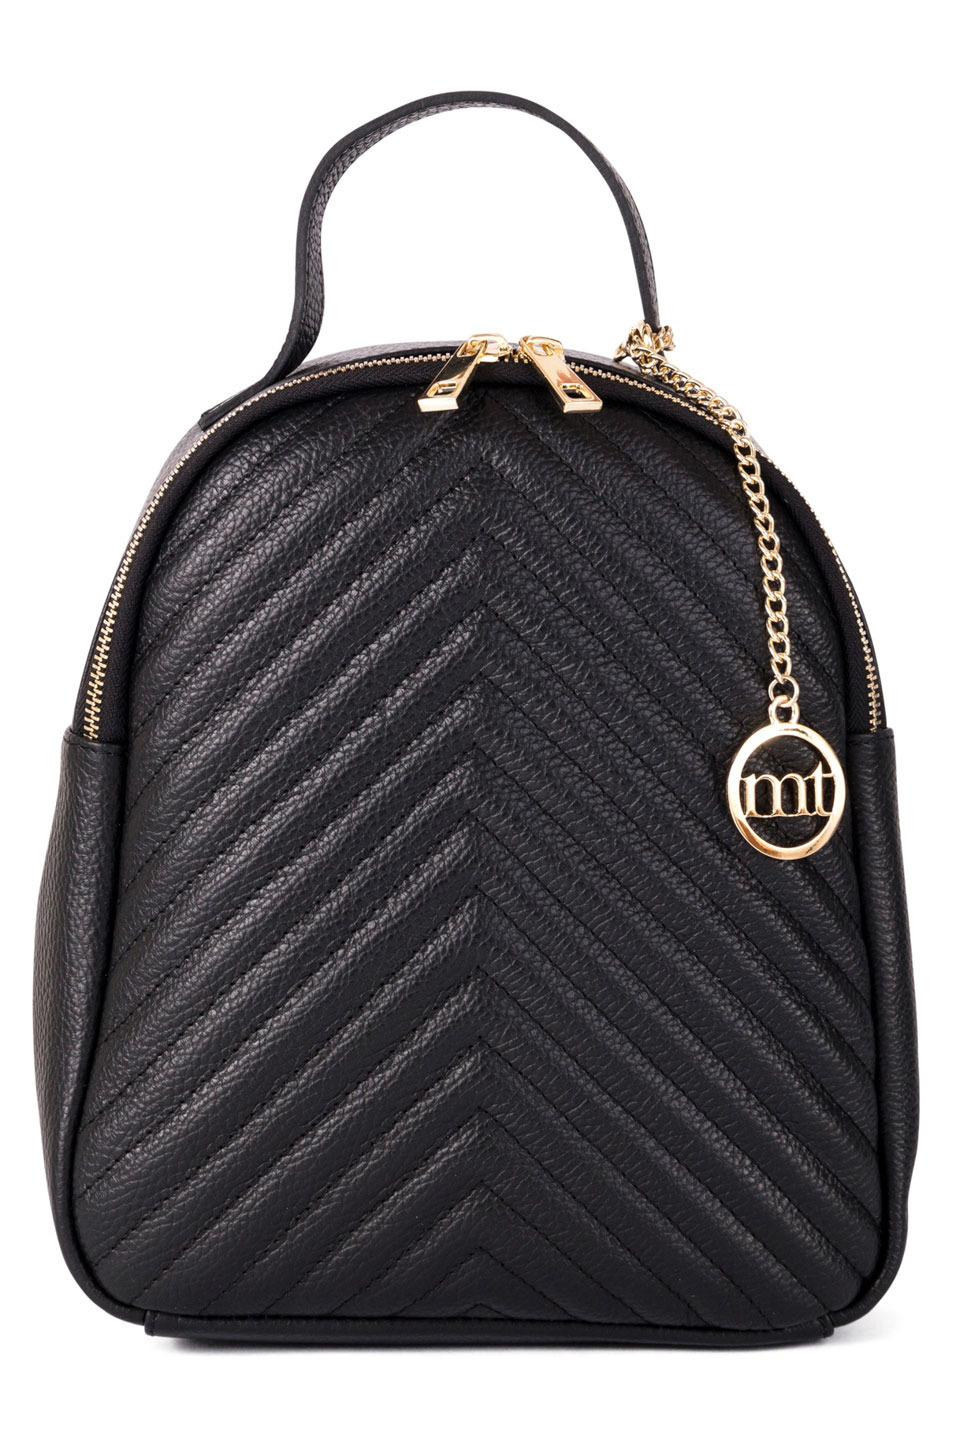 DONNA HANDBAG IN BLACK